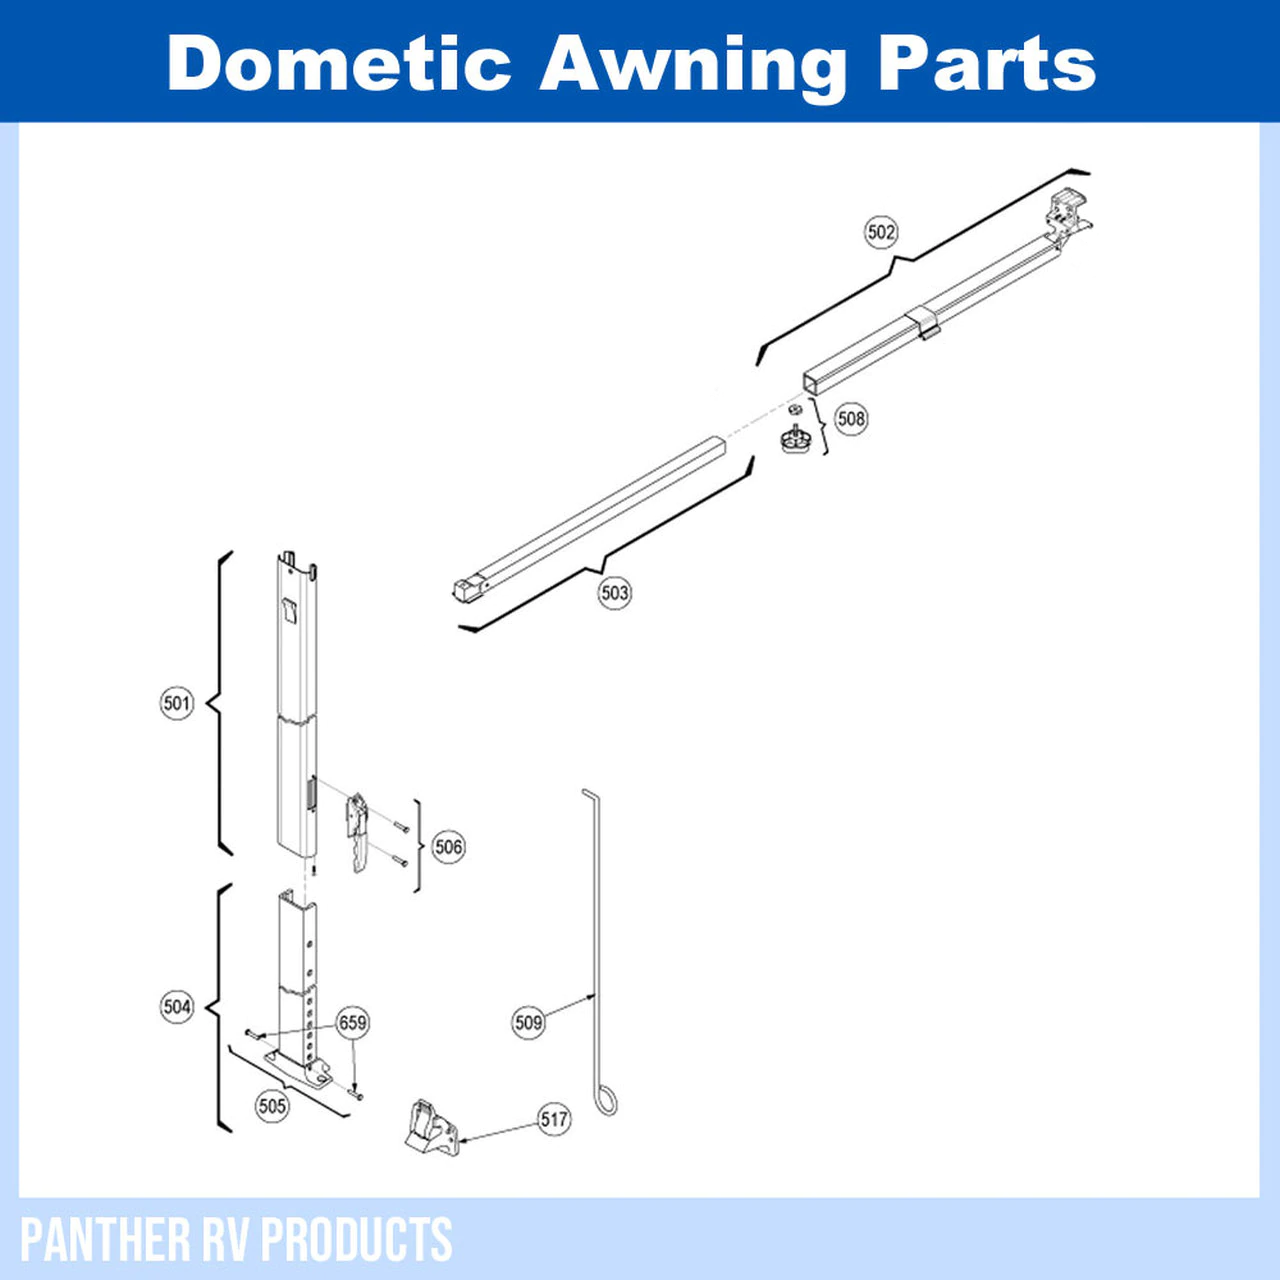 Dometic™ A&E 8273000.401 Tall Awning Arm Hardware Parts ...